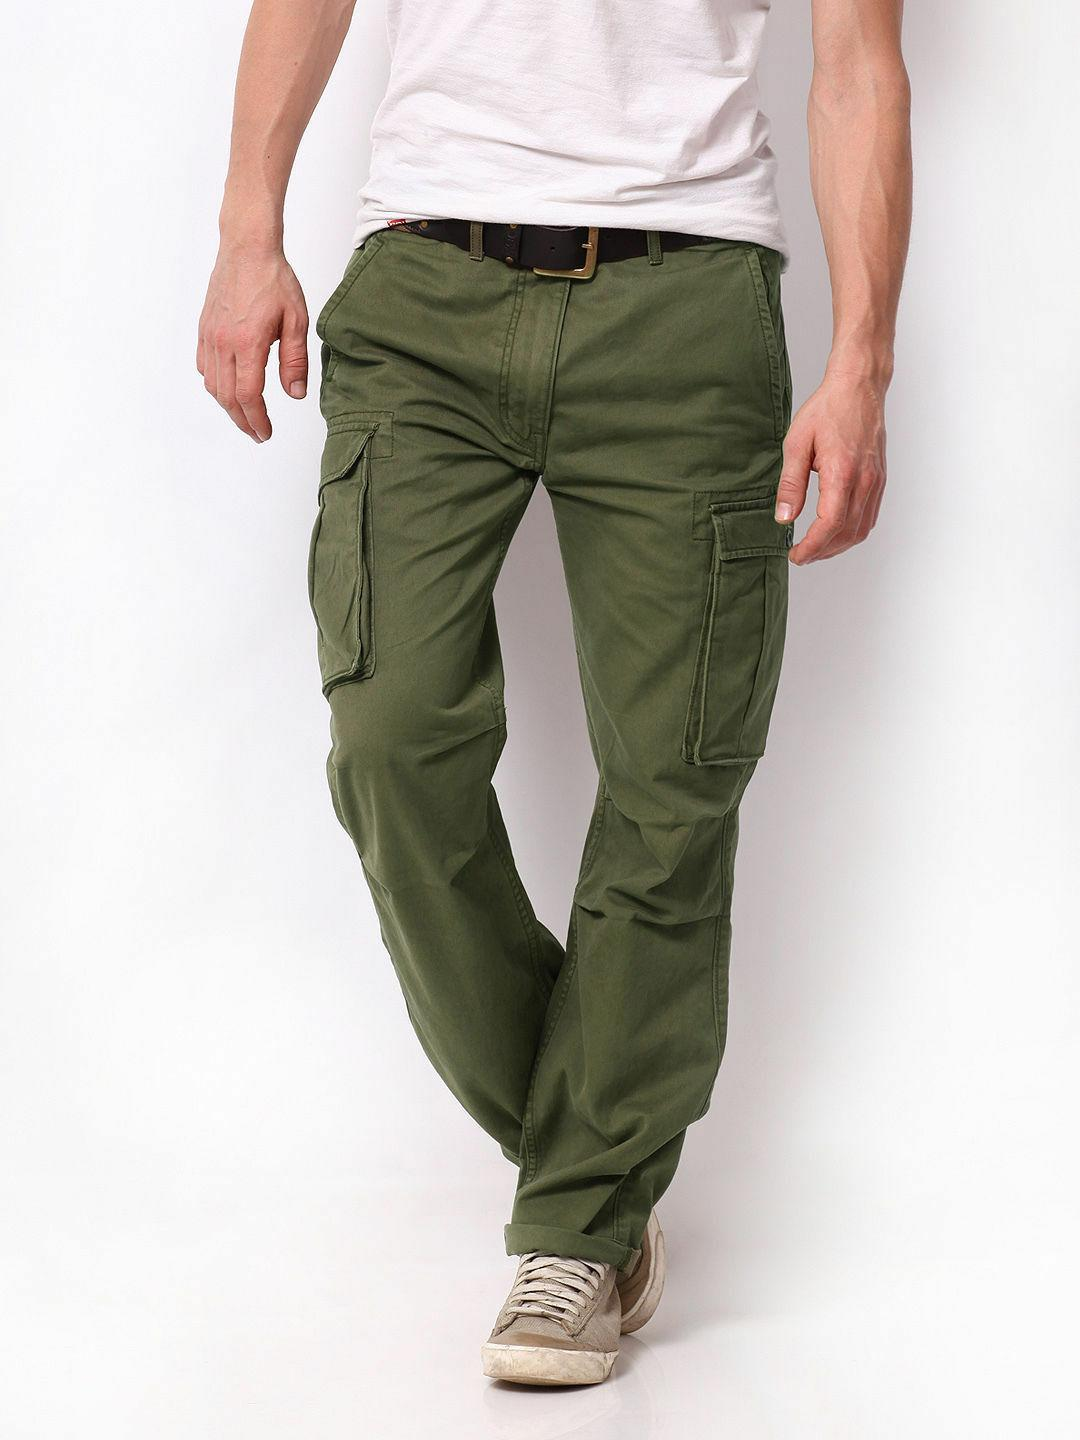 Levi's Men's Ace Pants Relaxed MANY